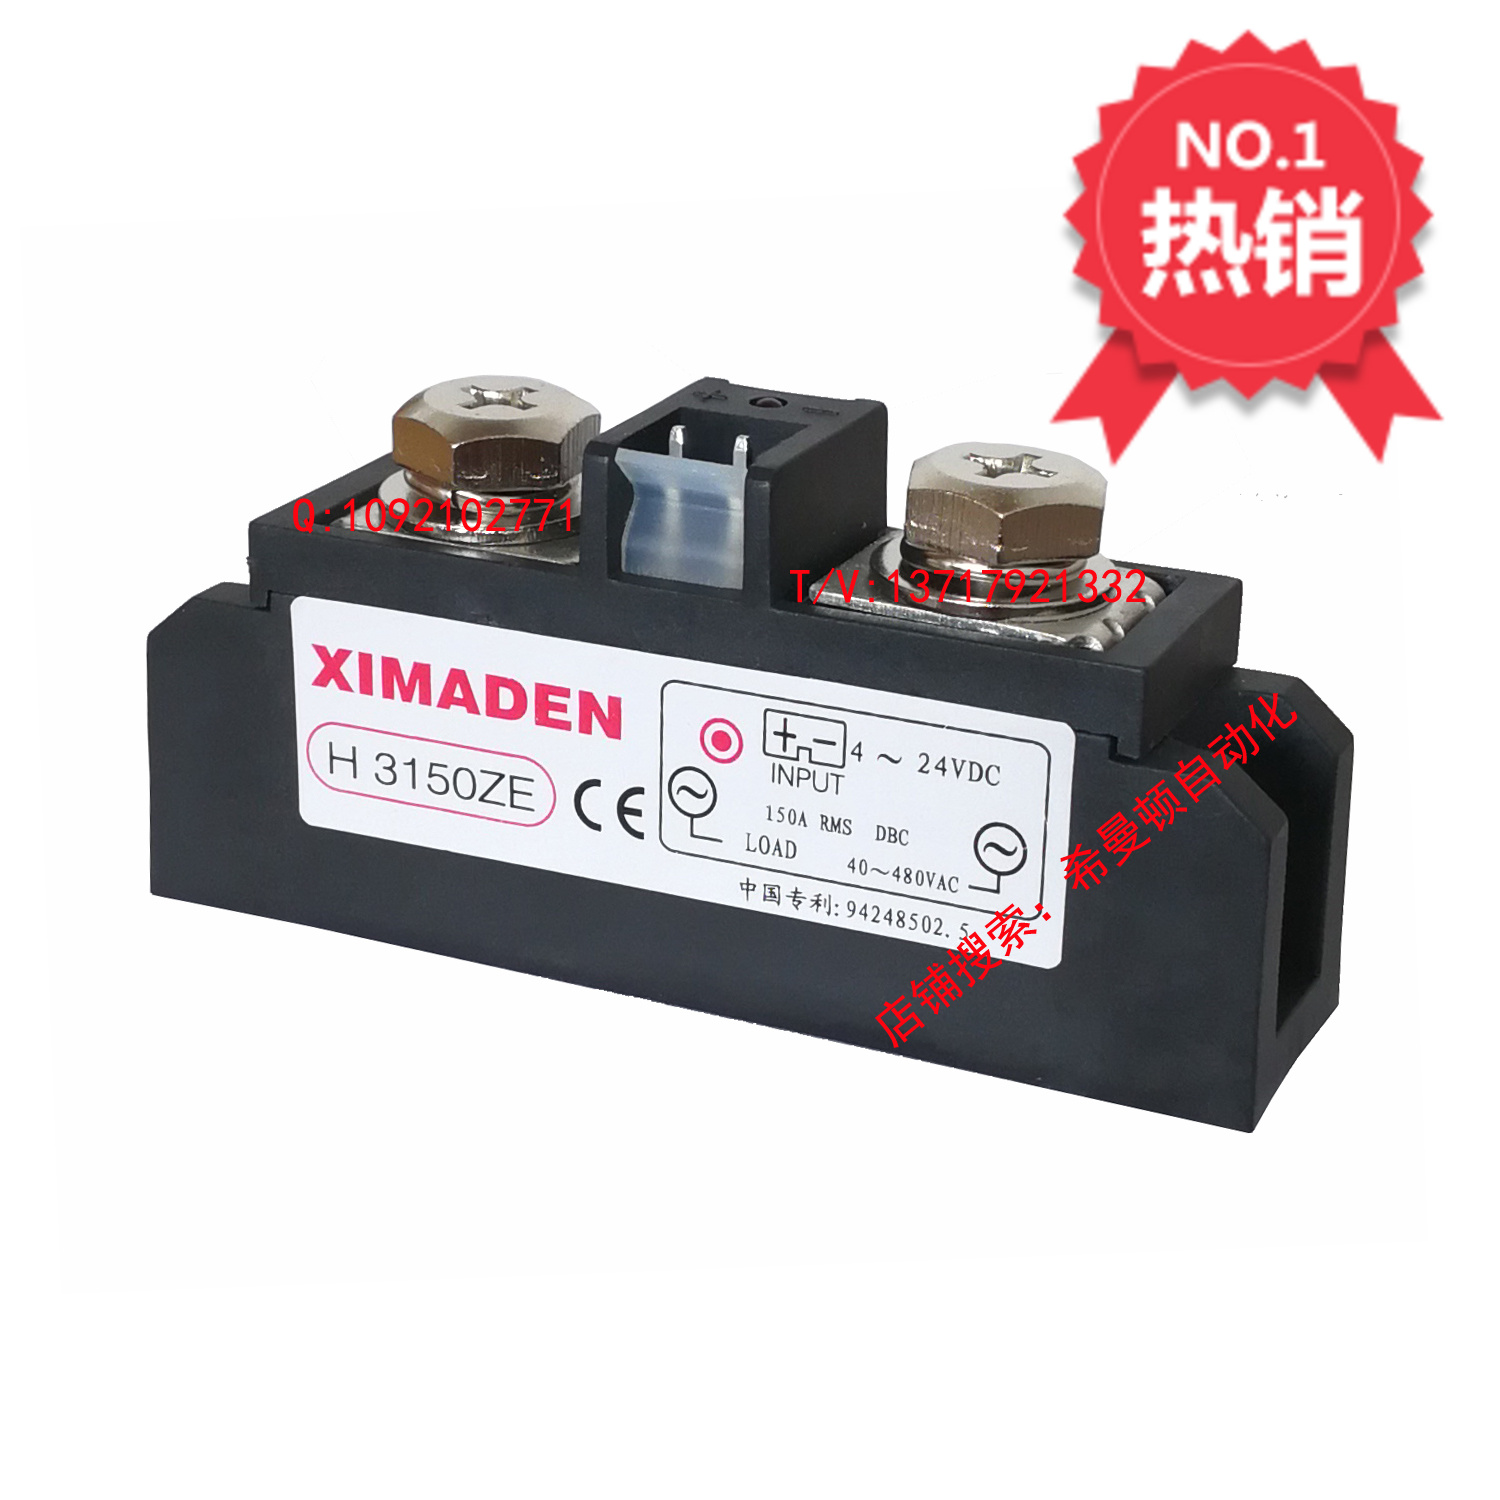 все цены на Industrial AC Solid State Relay H3150ZE, PE онлайн